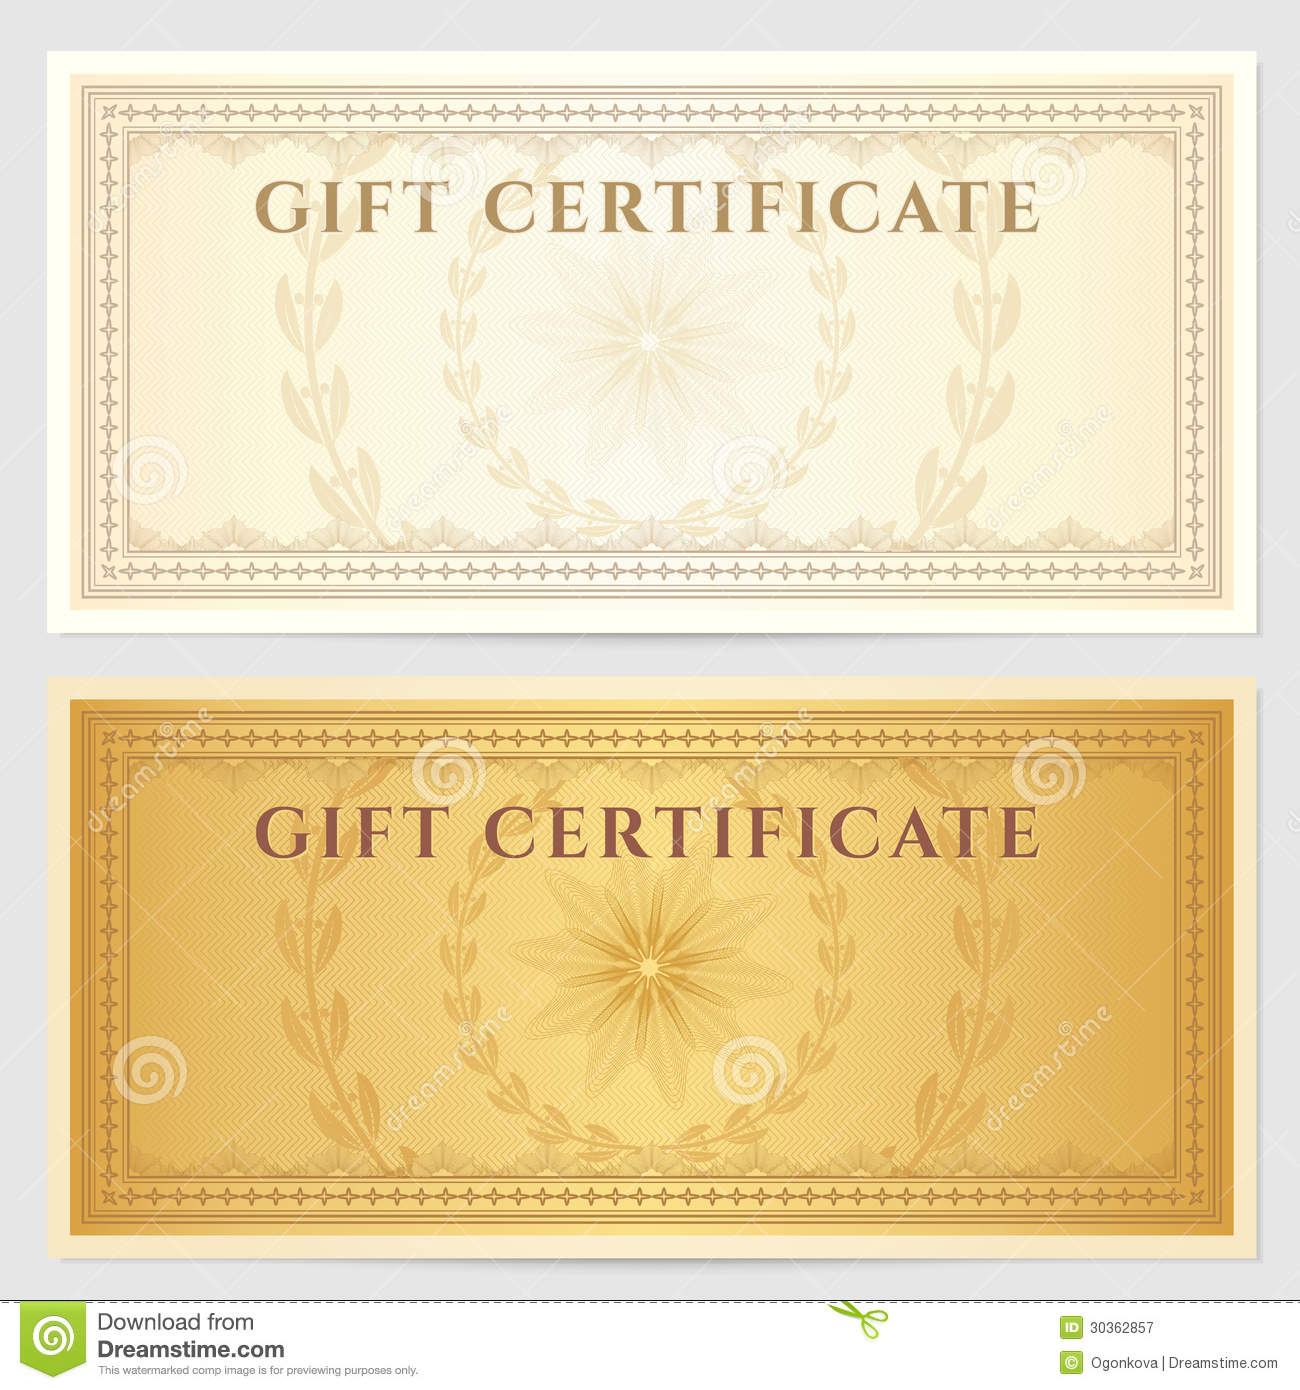 Vintage voucher coupon template with border stock vector vintage voucher coupon template with border royalty free stock photo 1betcityfo Images